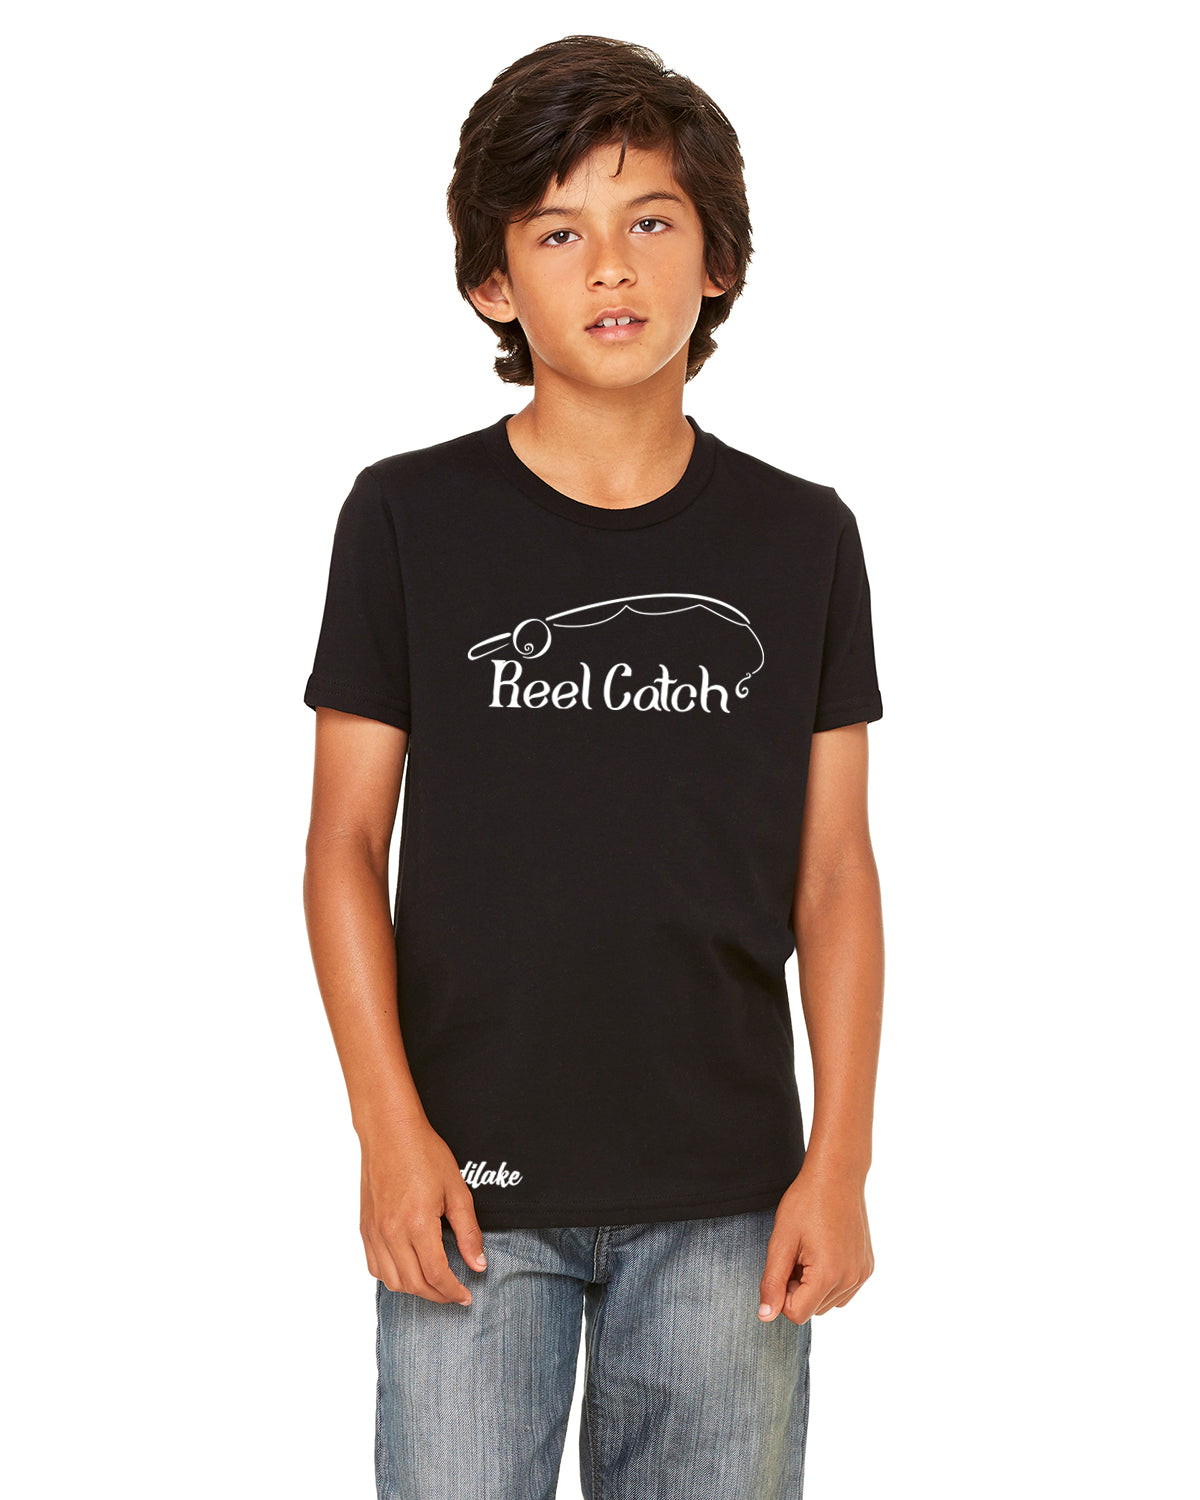 Reel Catch Tee